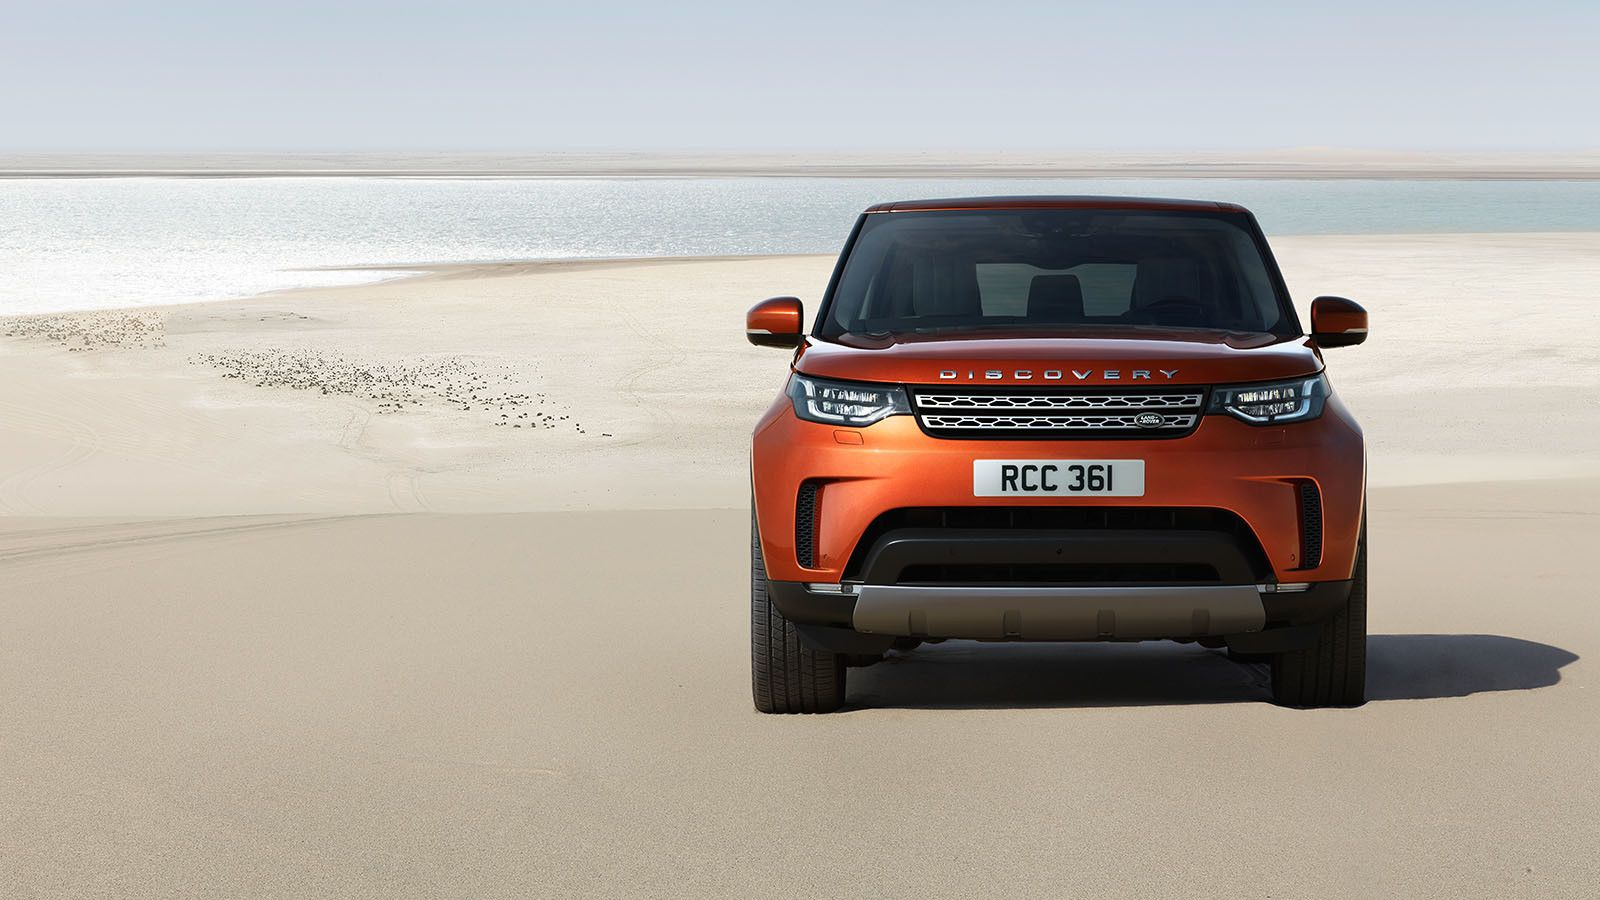 Sell & Buy Land Rover in Dubai - UAE